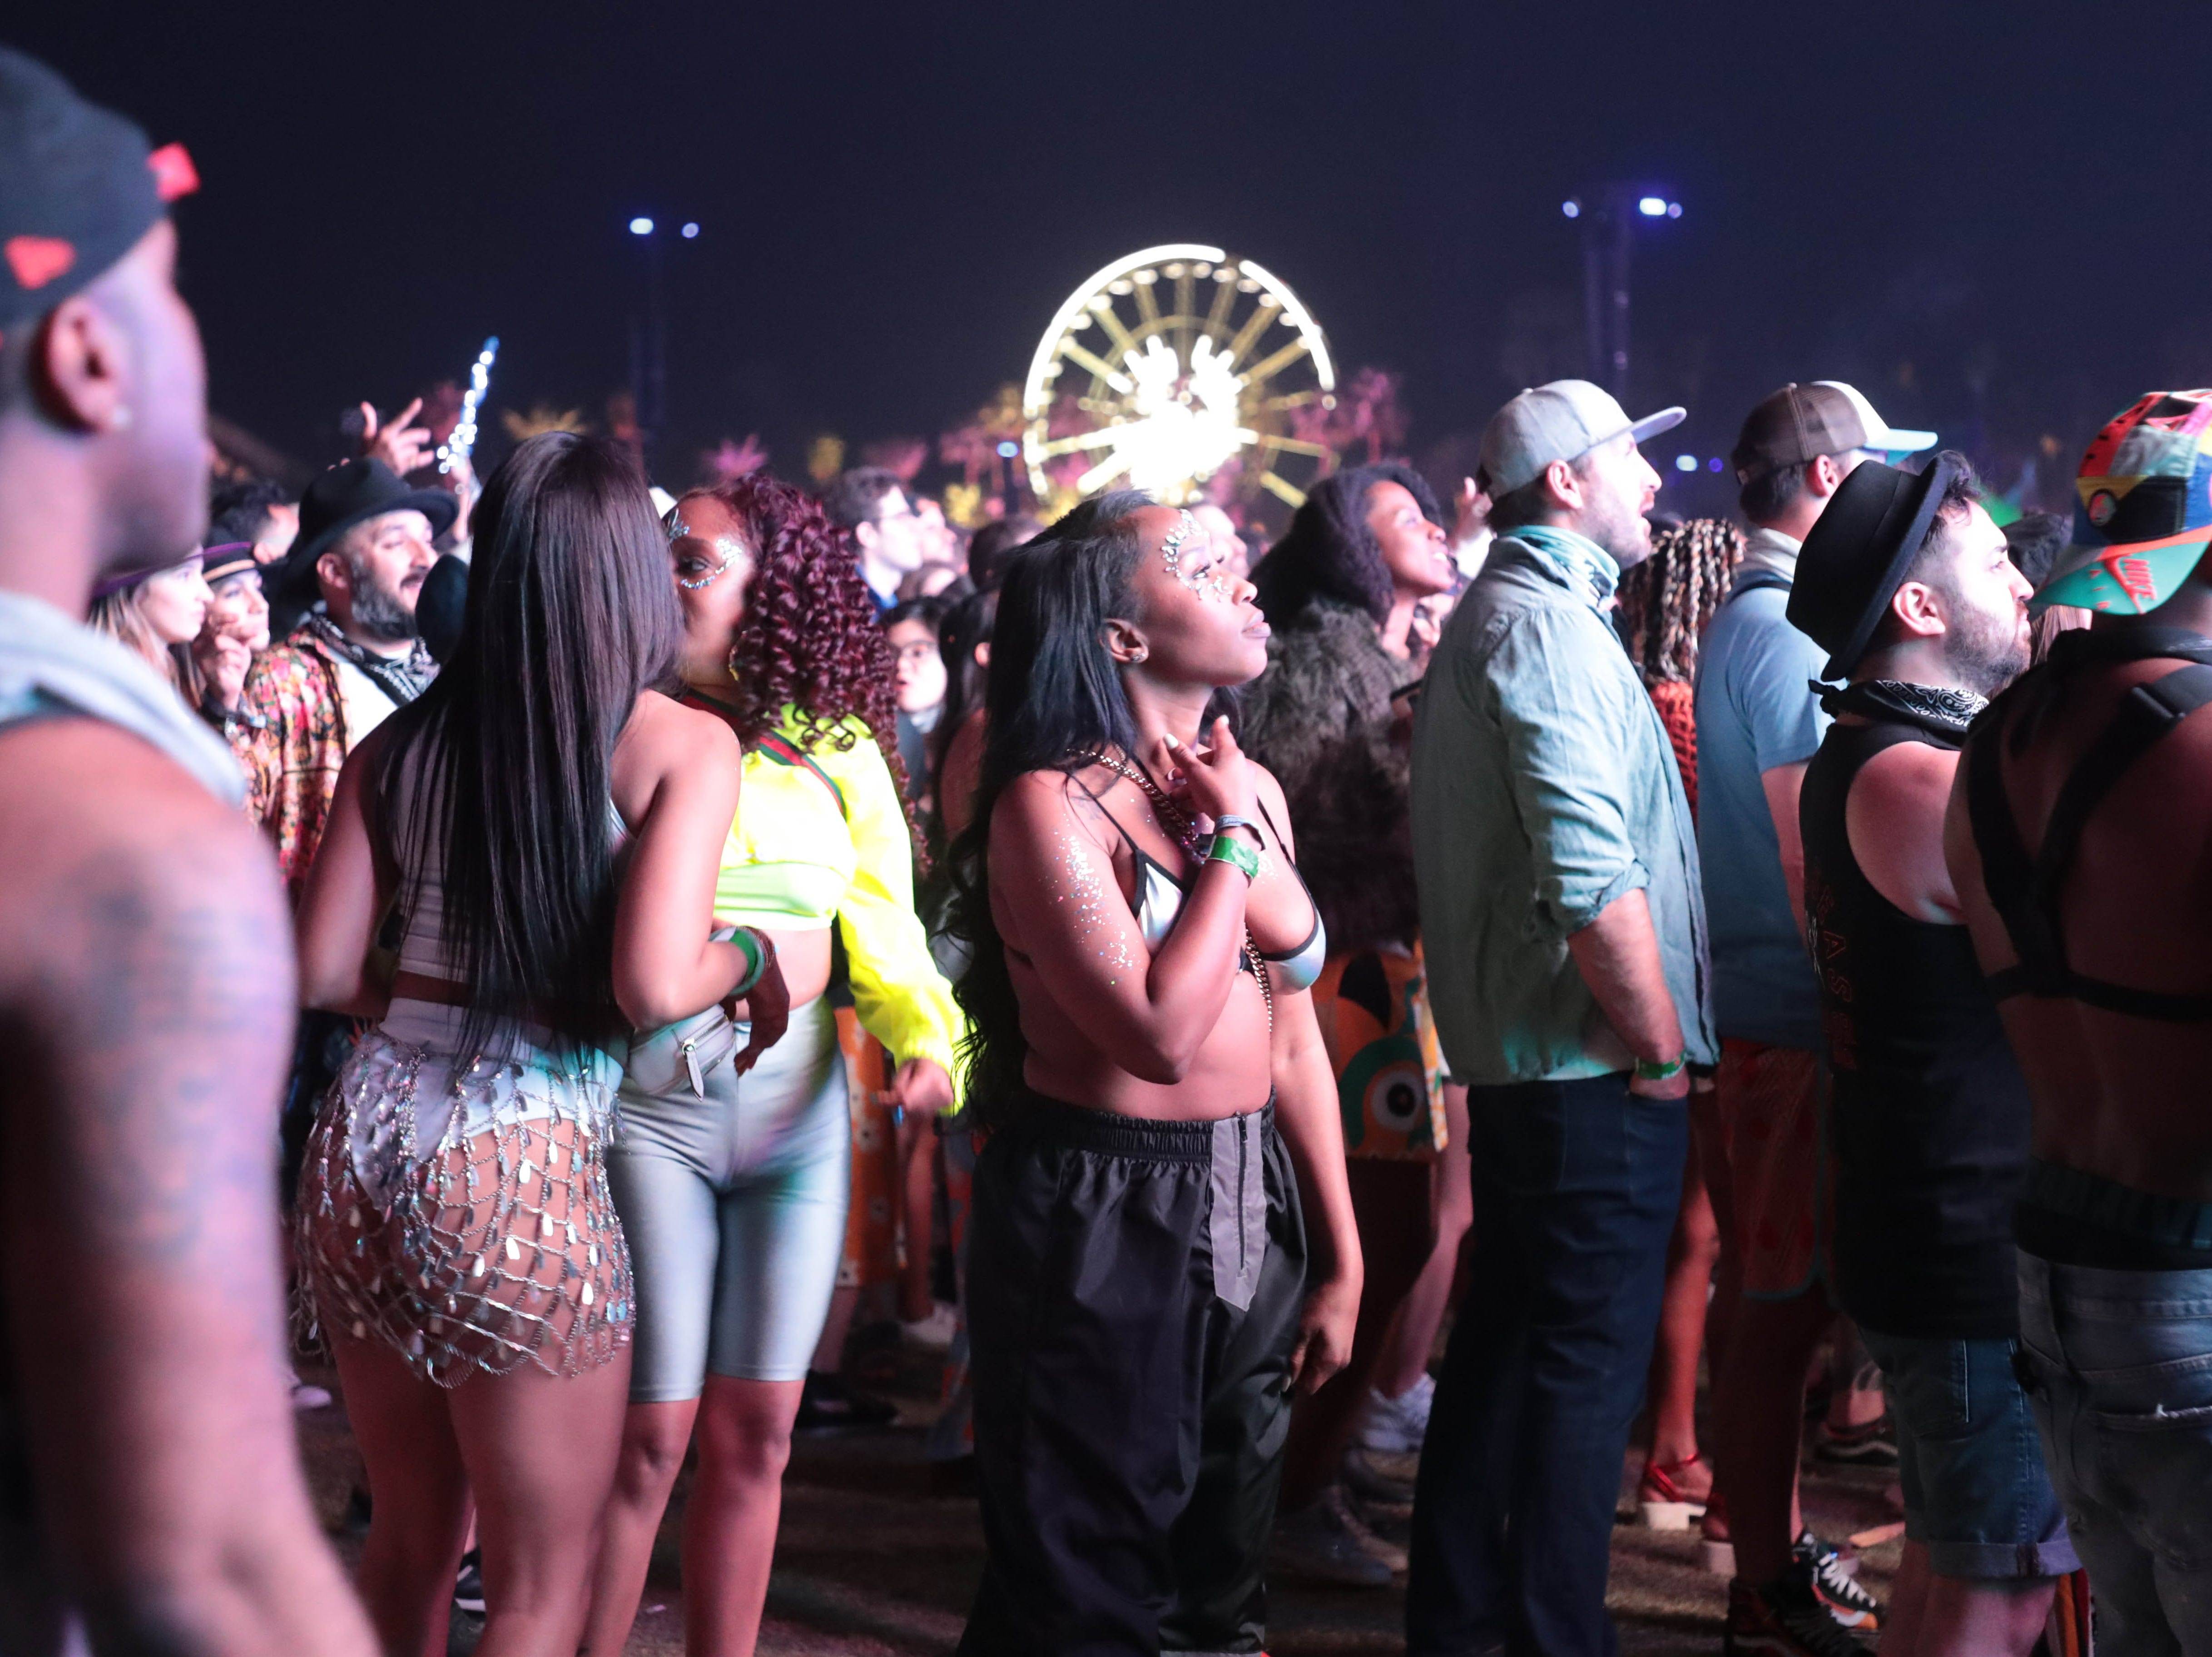 Fans watch as Janelle Monáe performs at Coachella Valley Music and Arts Festival on Friday, April 19, 2019 in Indio, Calif.